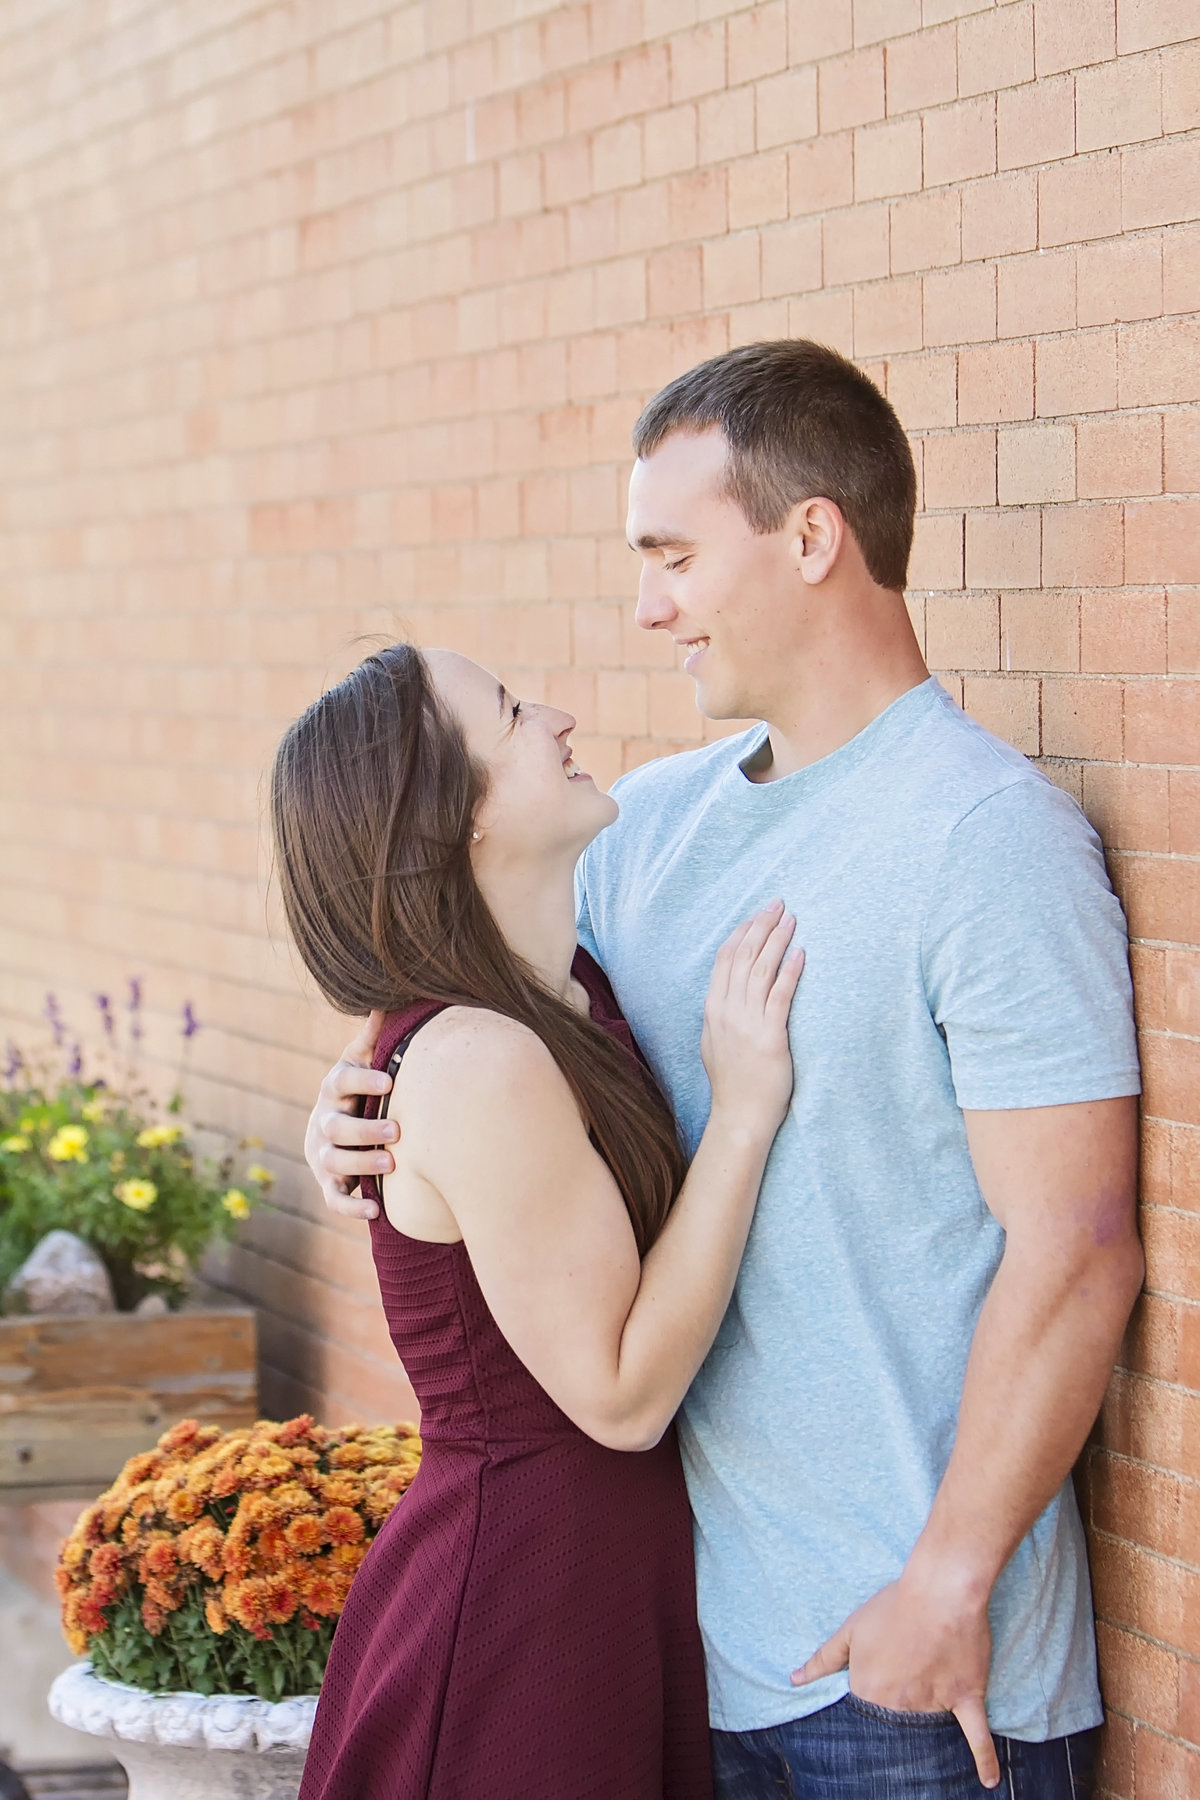 Urban Wausau engagement photos by Green Bay wedding photographer Casi Lea Photography